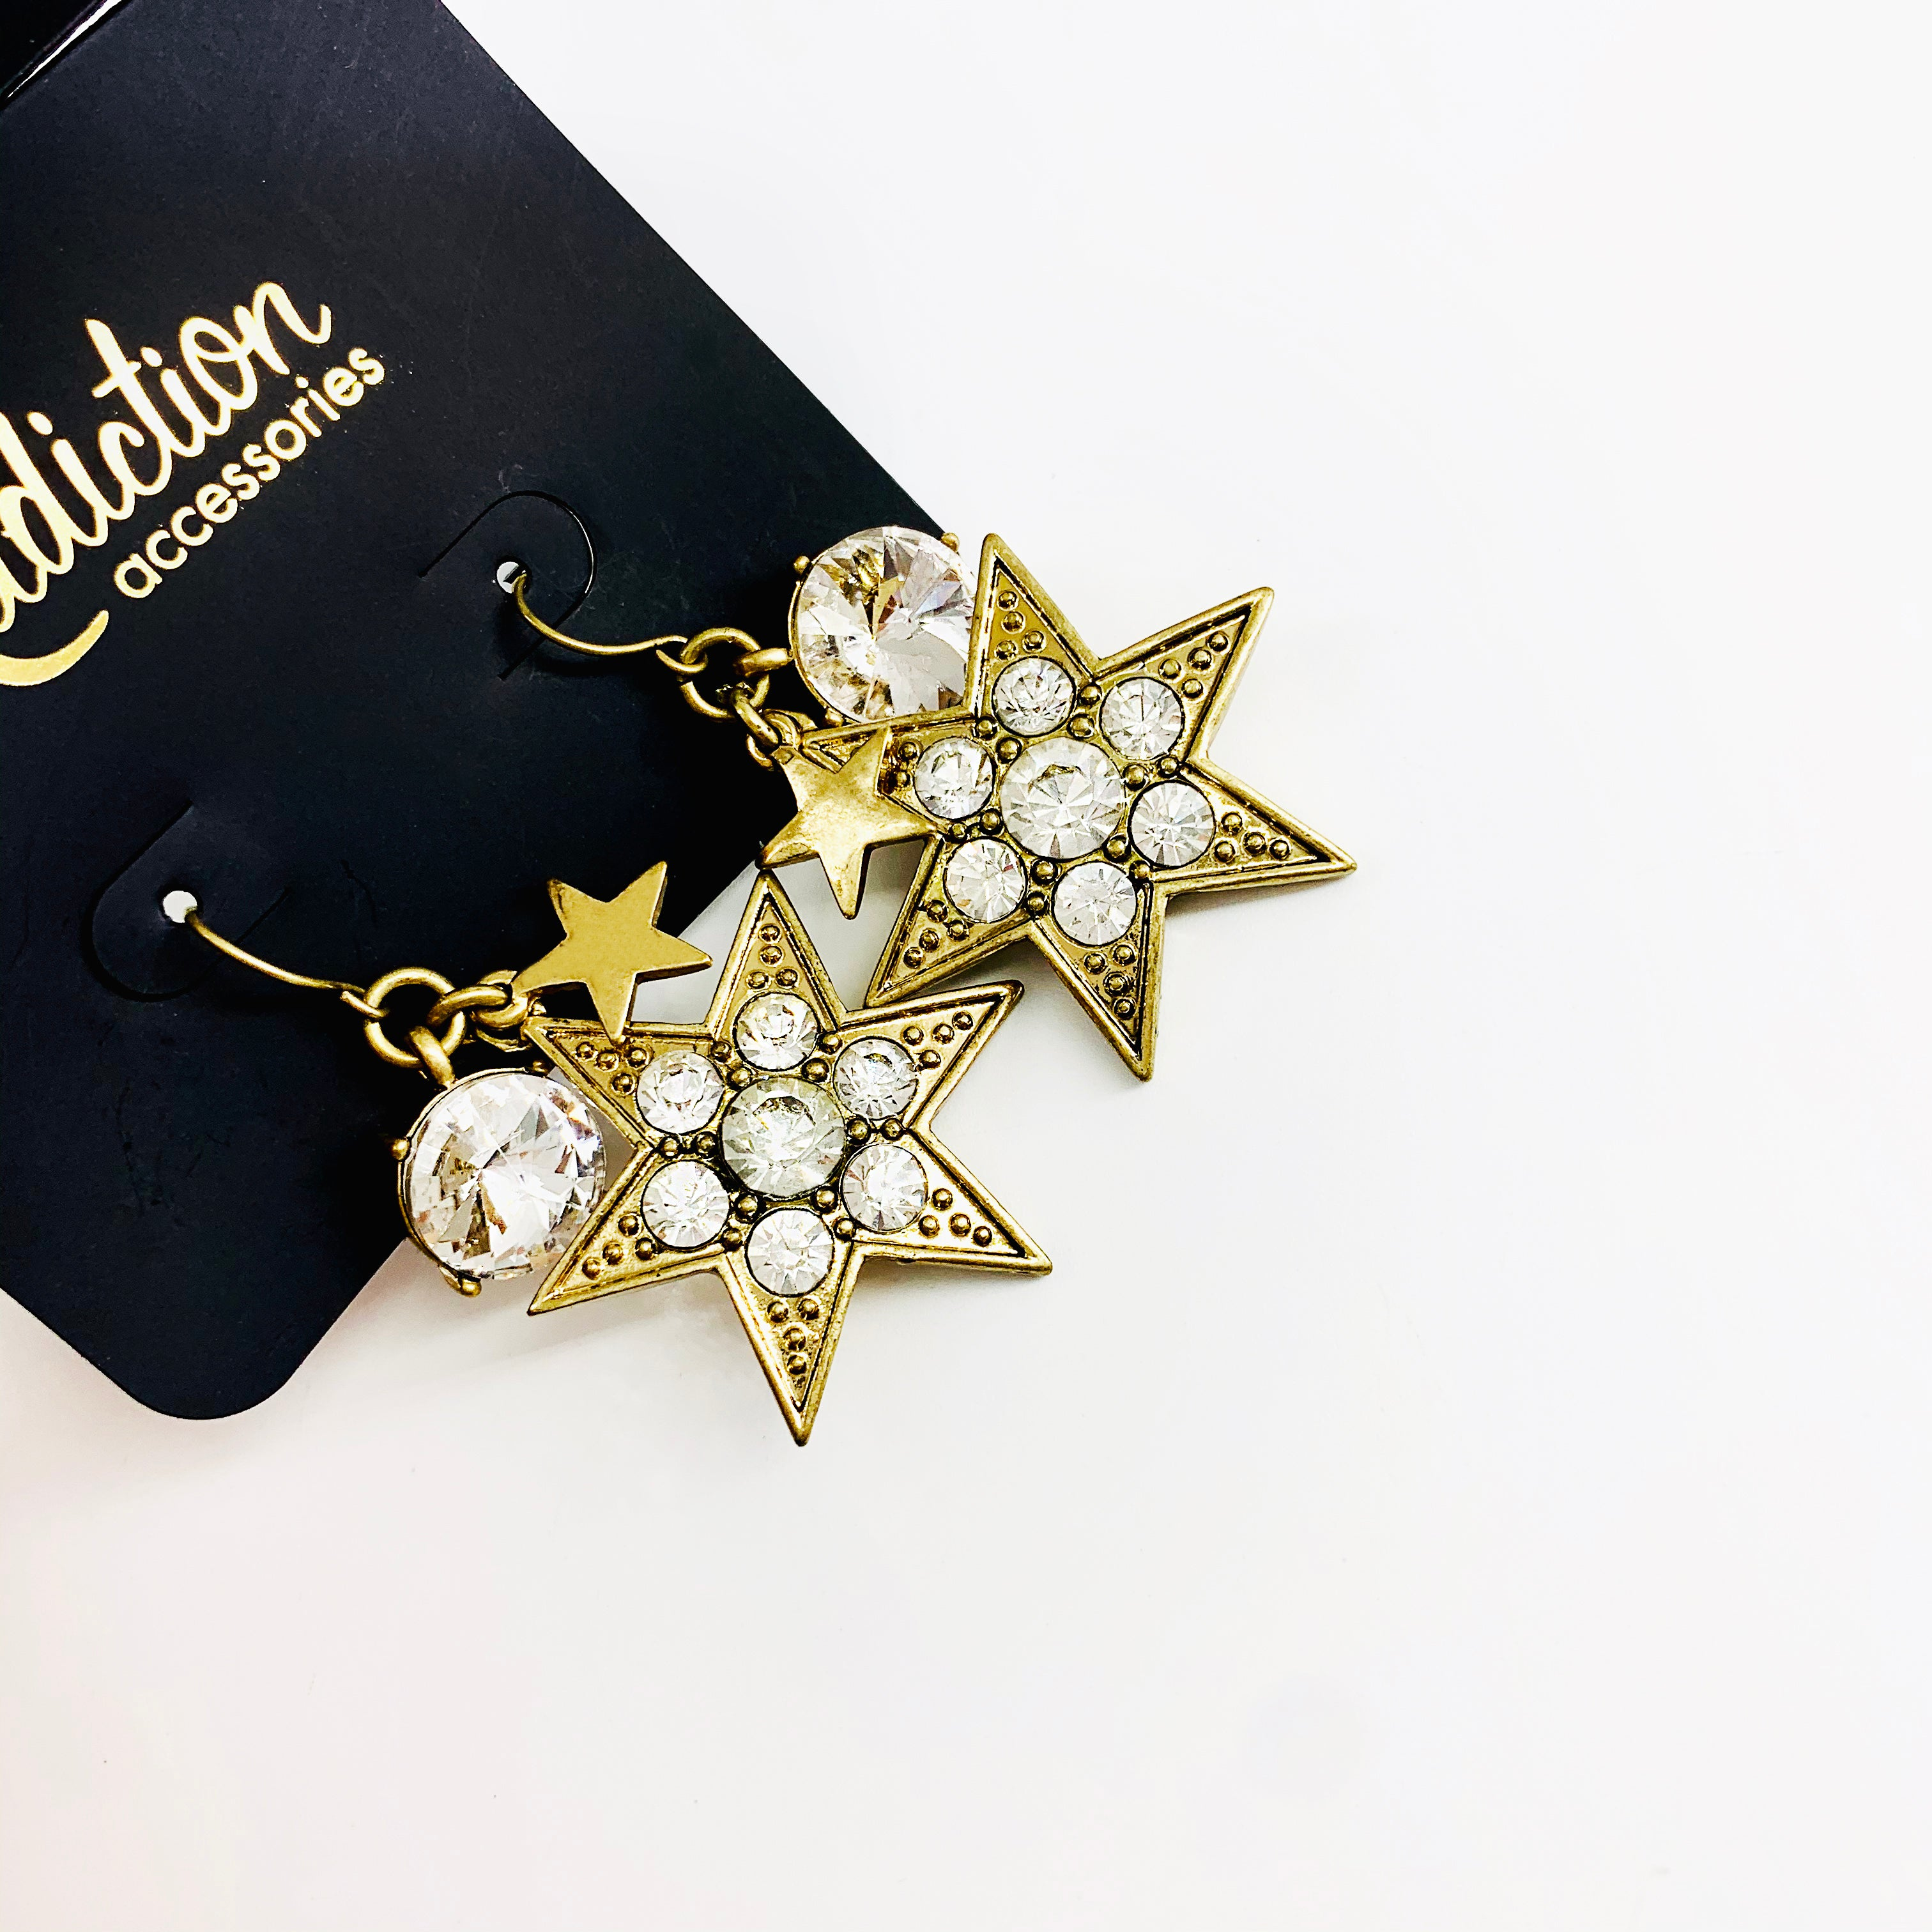 Dark gold star earrings with diamante stones